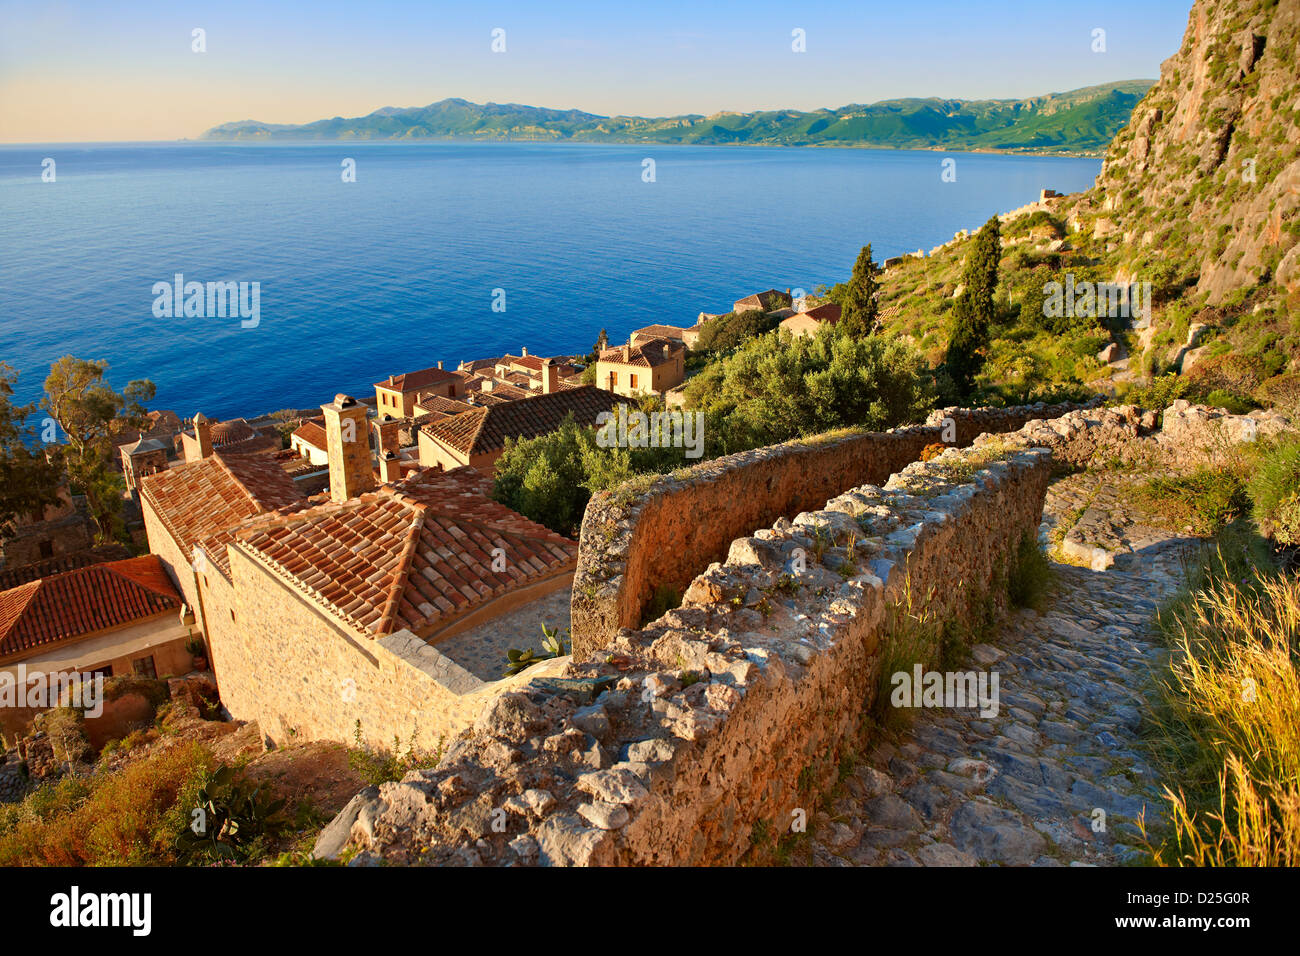 Arial view of Monemvasia Byzantine Island castle town with acropolis on the plateau. Peloponnese, Greece - Stock Image